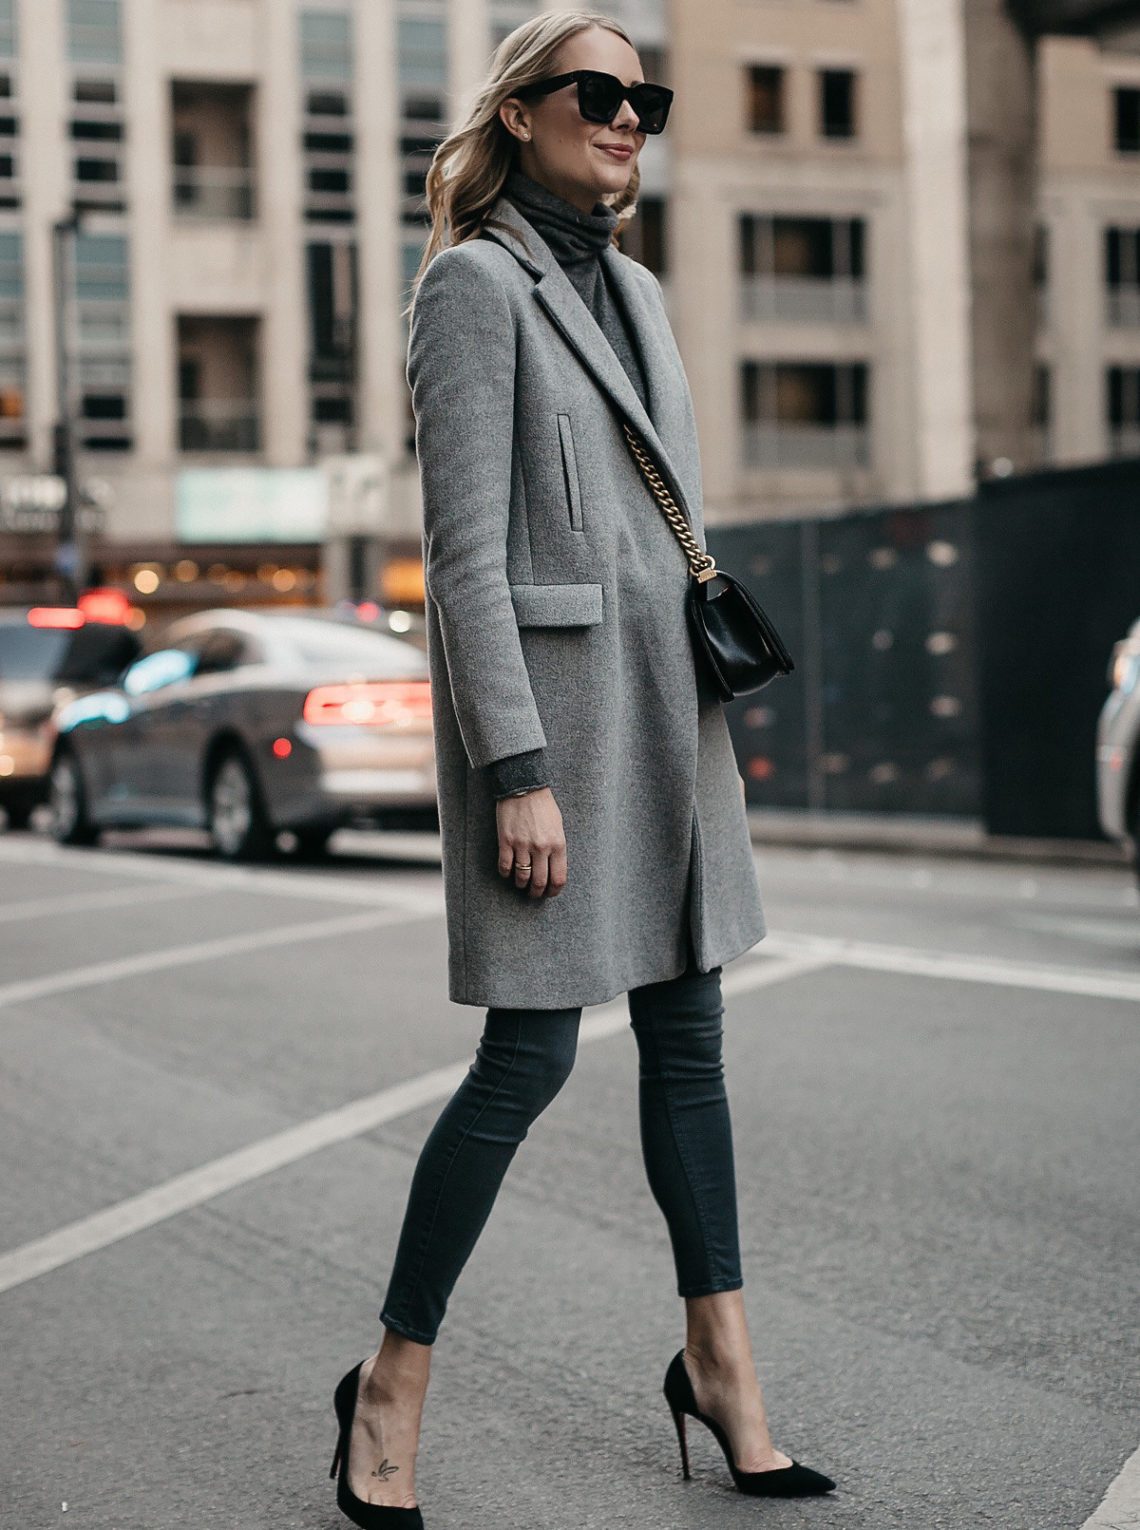 Blonde Woman Wearing Grey Coat Grey Turtleneck Sweater Grey Skinny Jeans Fashion Jackson Dallas Blogger Fashion Blogger Street Style